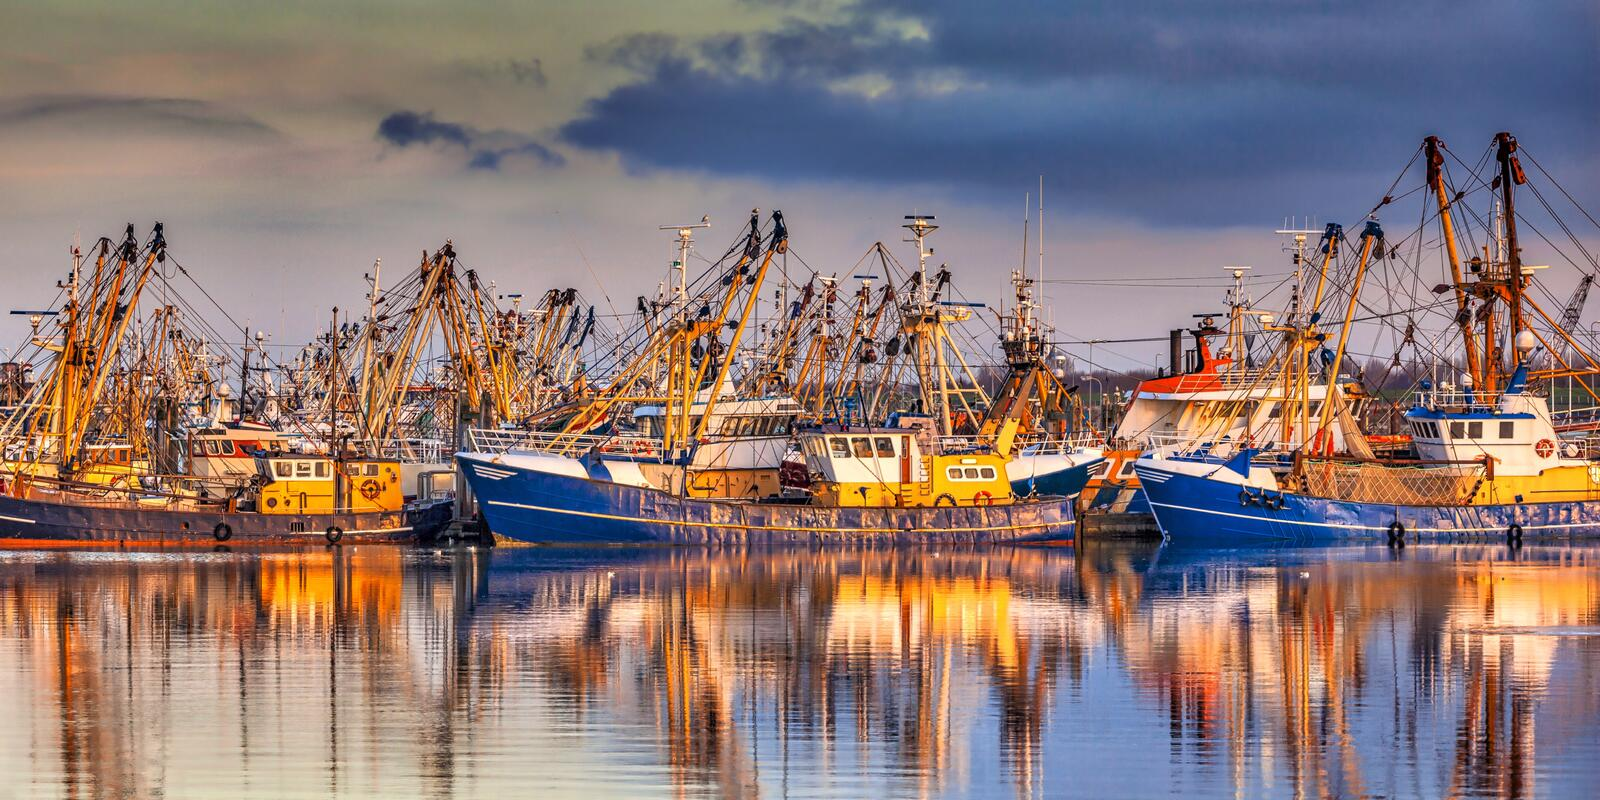 Fishing ships during majestic sunset stock image